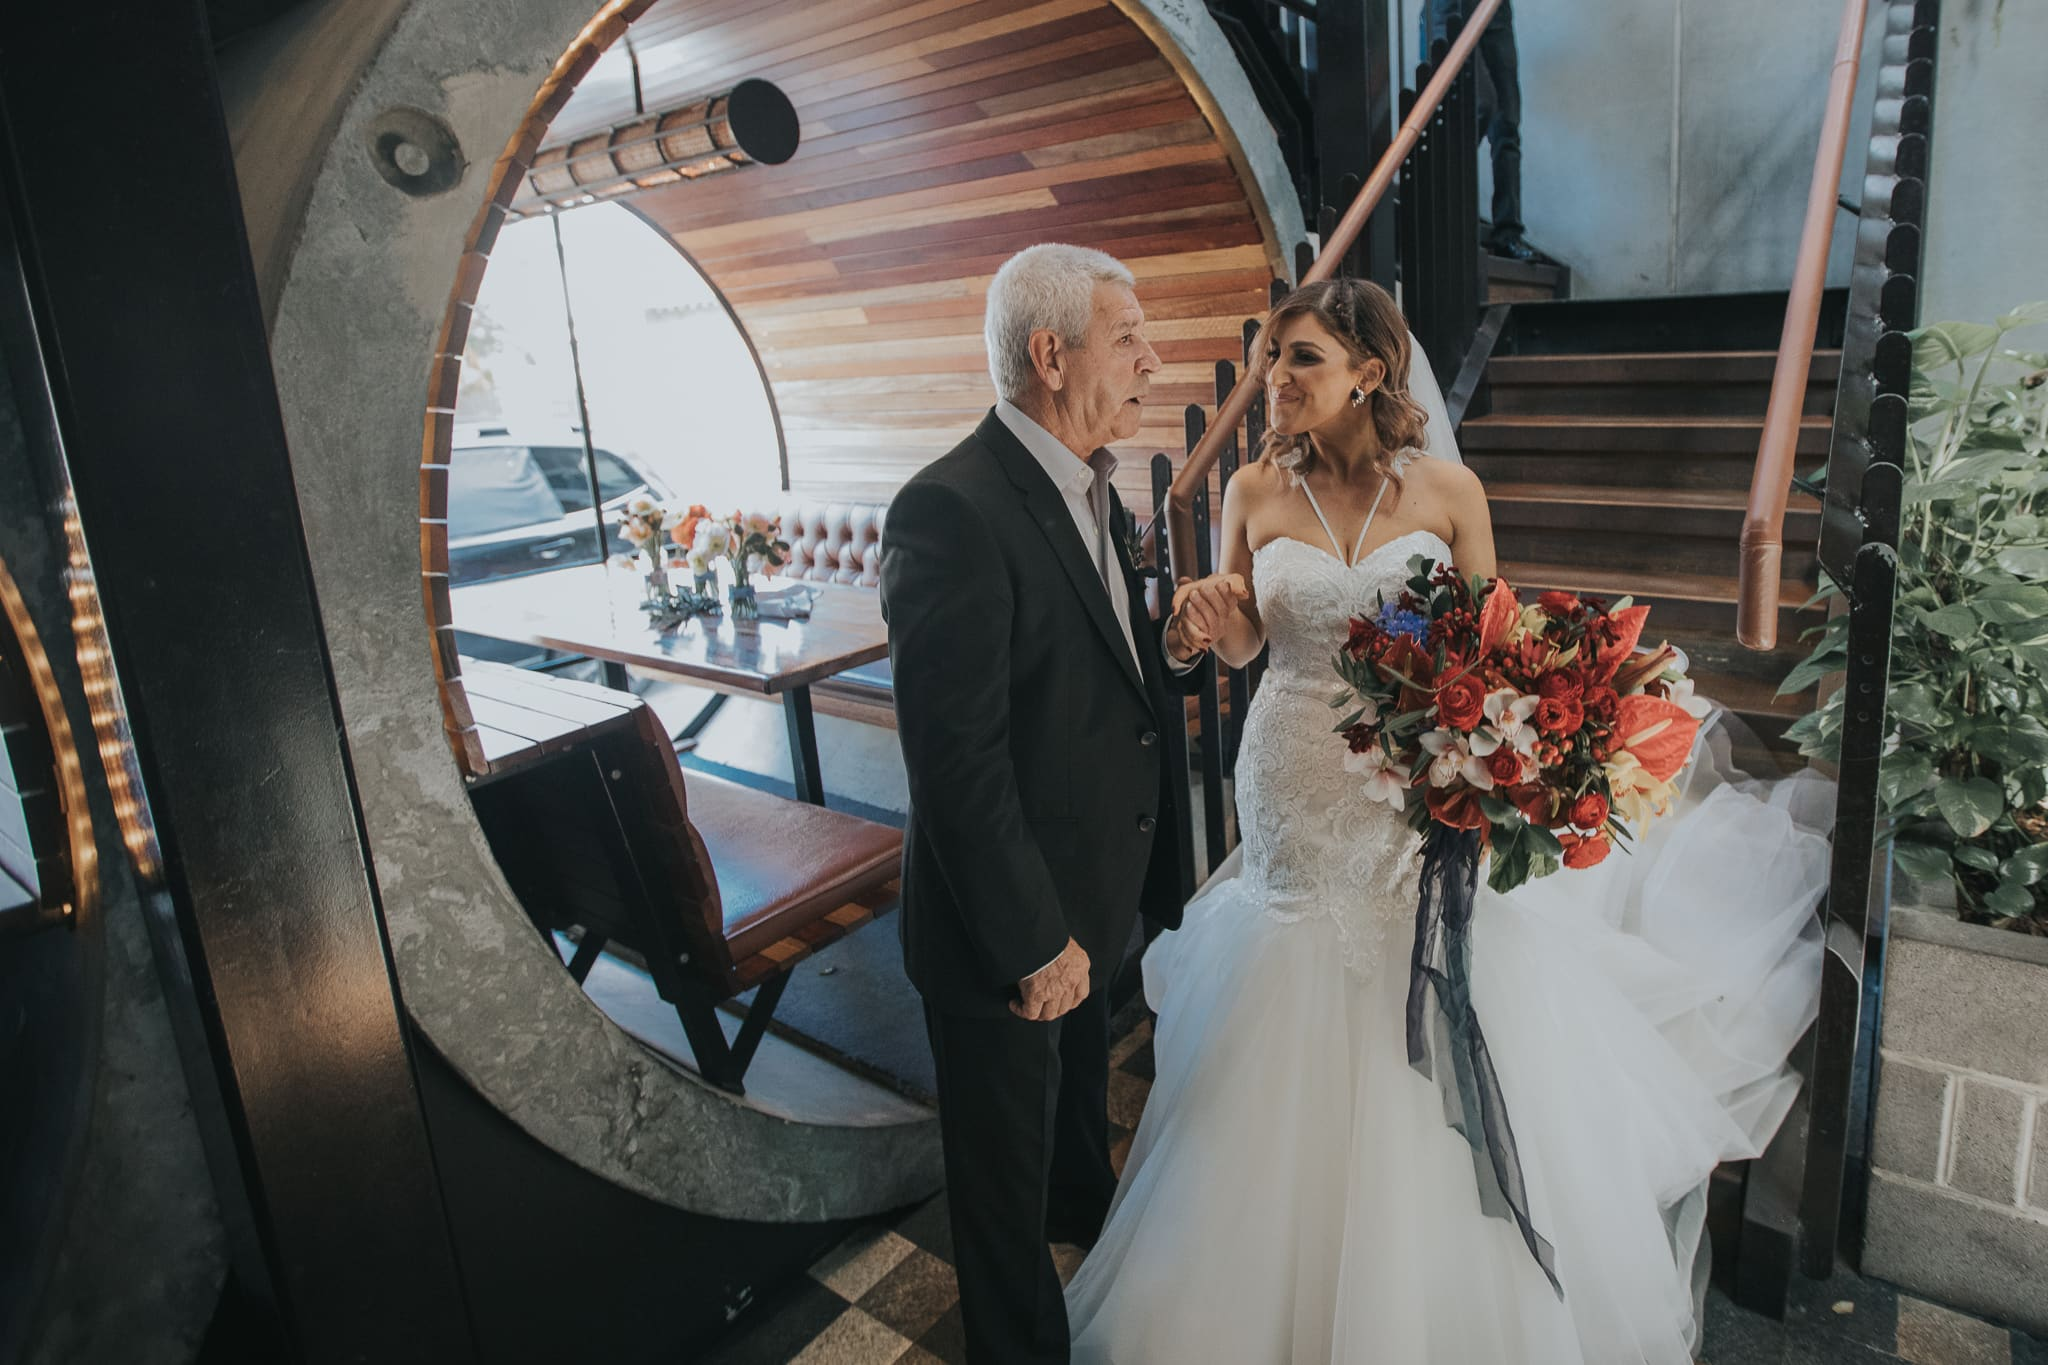 Father meets the bride to walk her down the aisle at the Prahran Hotel Wedding Venue